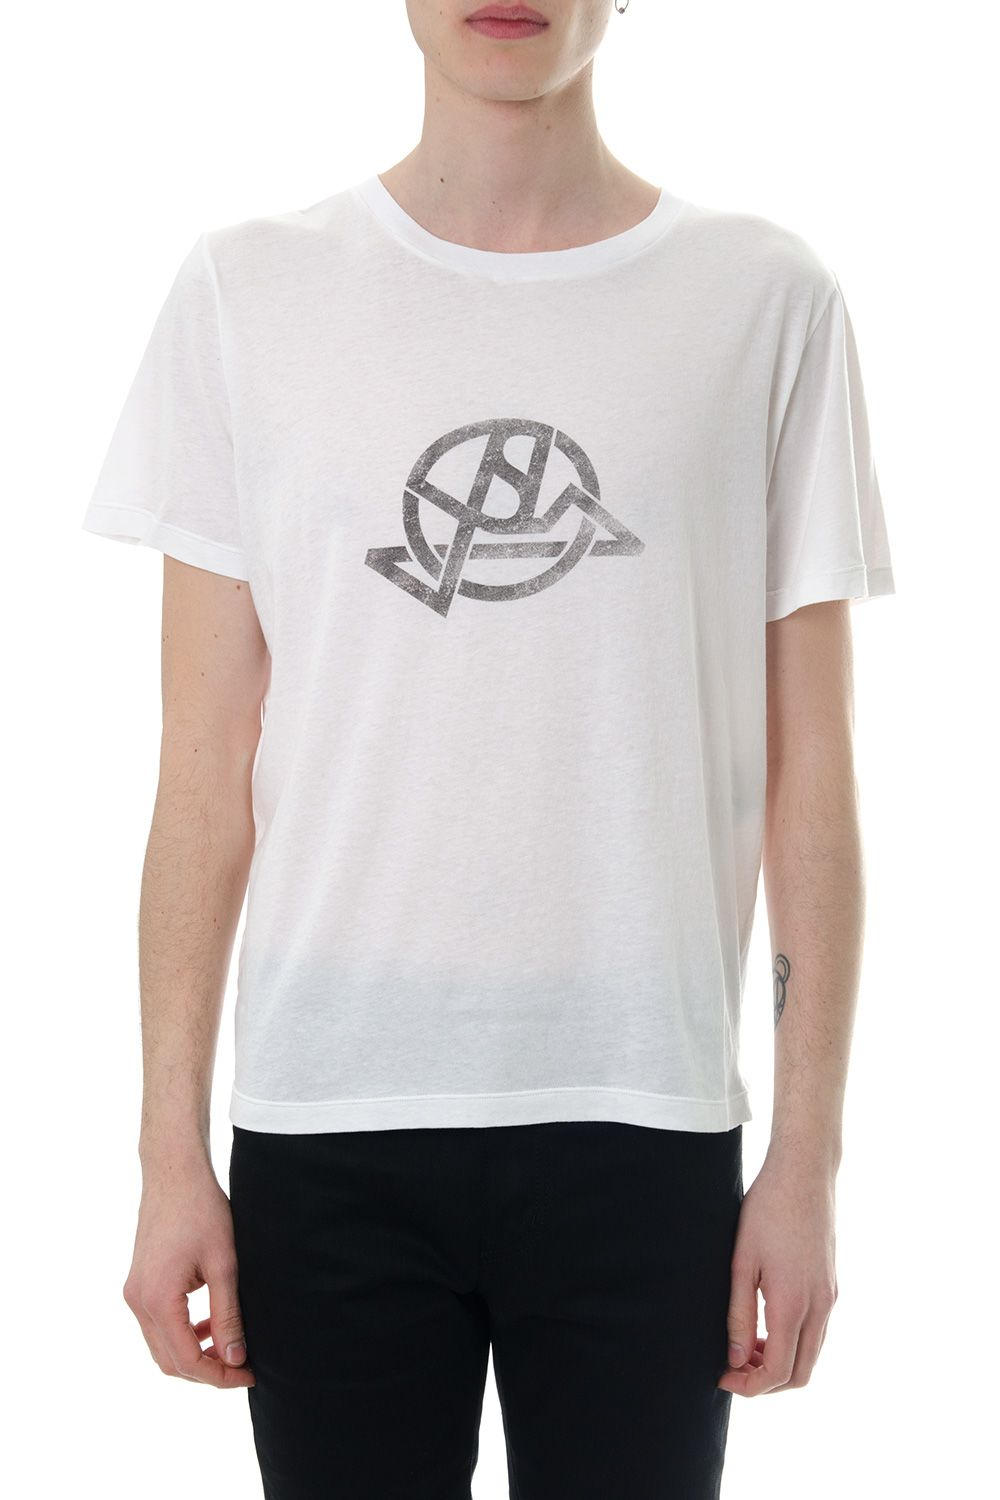 Saint Laurent White Cotton T-shirt With Graphic